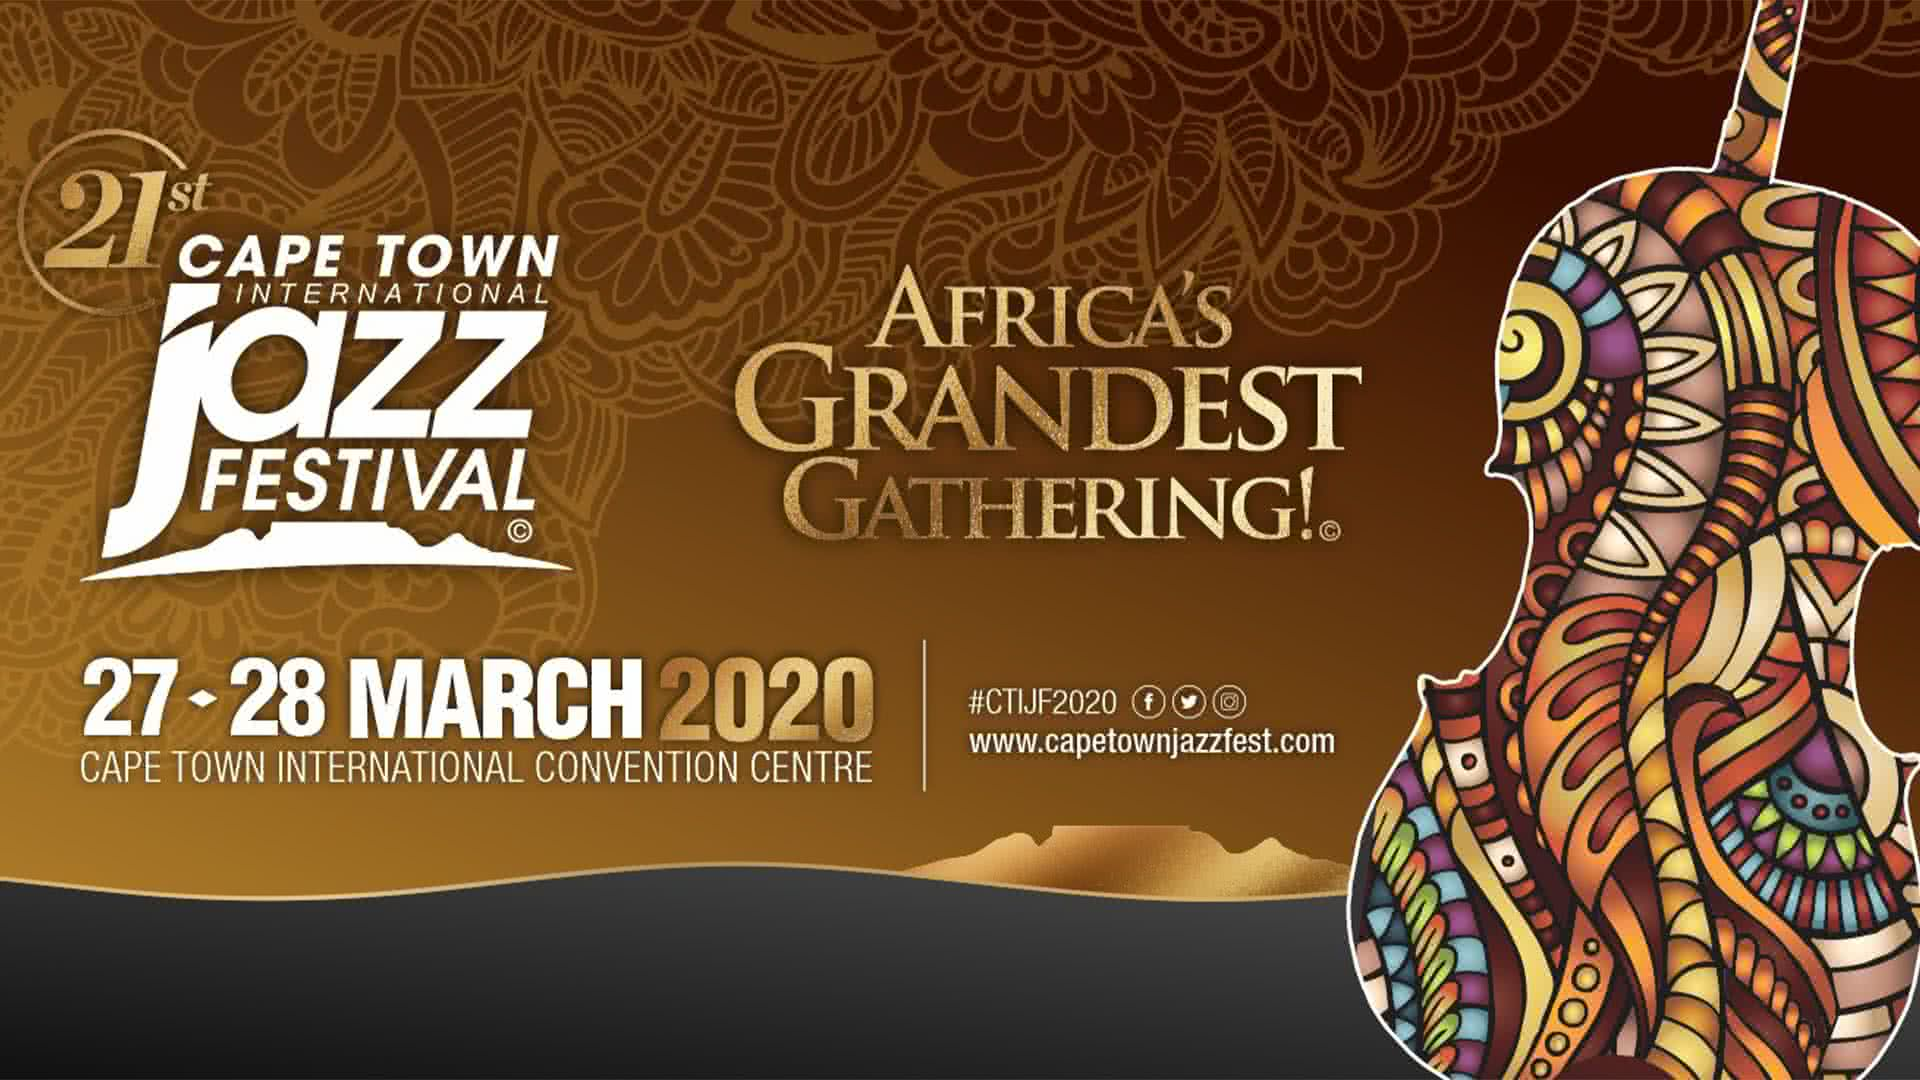 Win A Weekend Pass To The Jazz Festival Plus A Stay At Southern Sun Hotel Waterfront photo